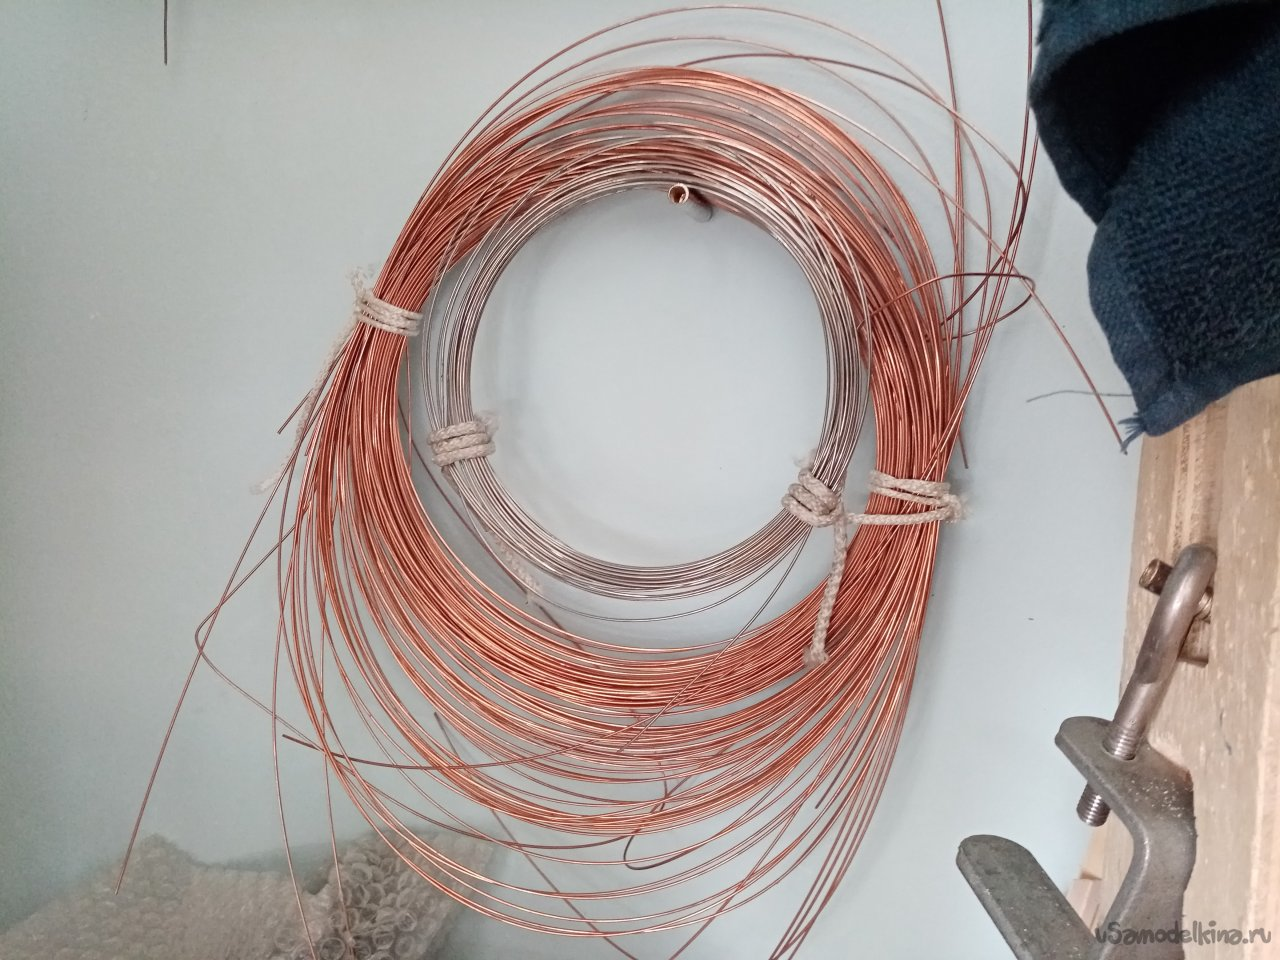 Straighten the wire and make bowdens for the glider model